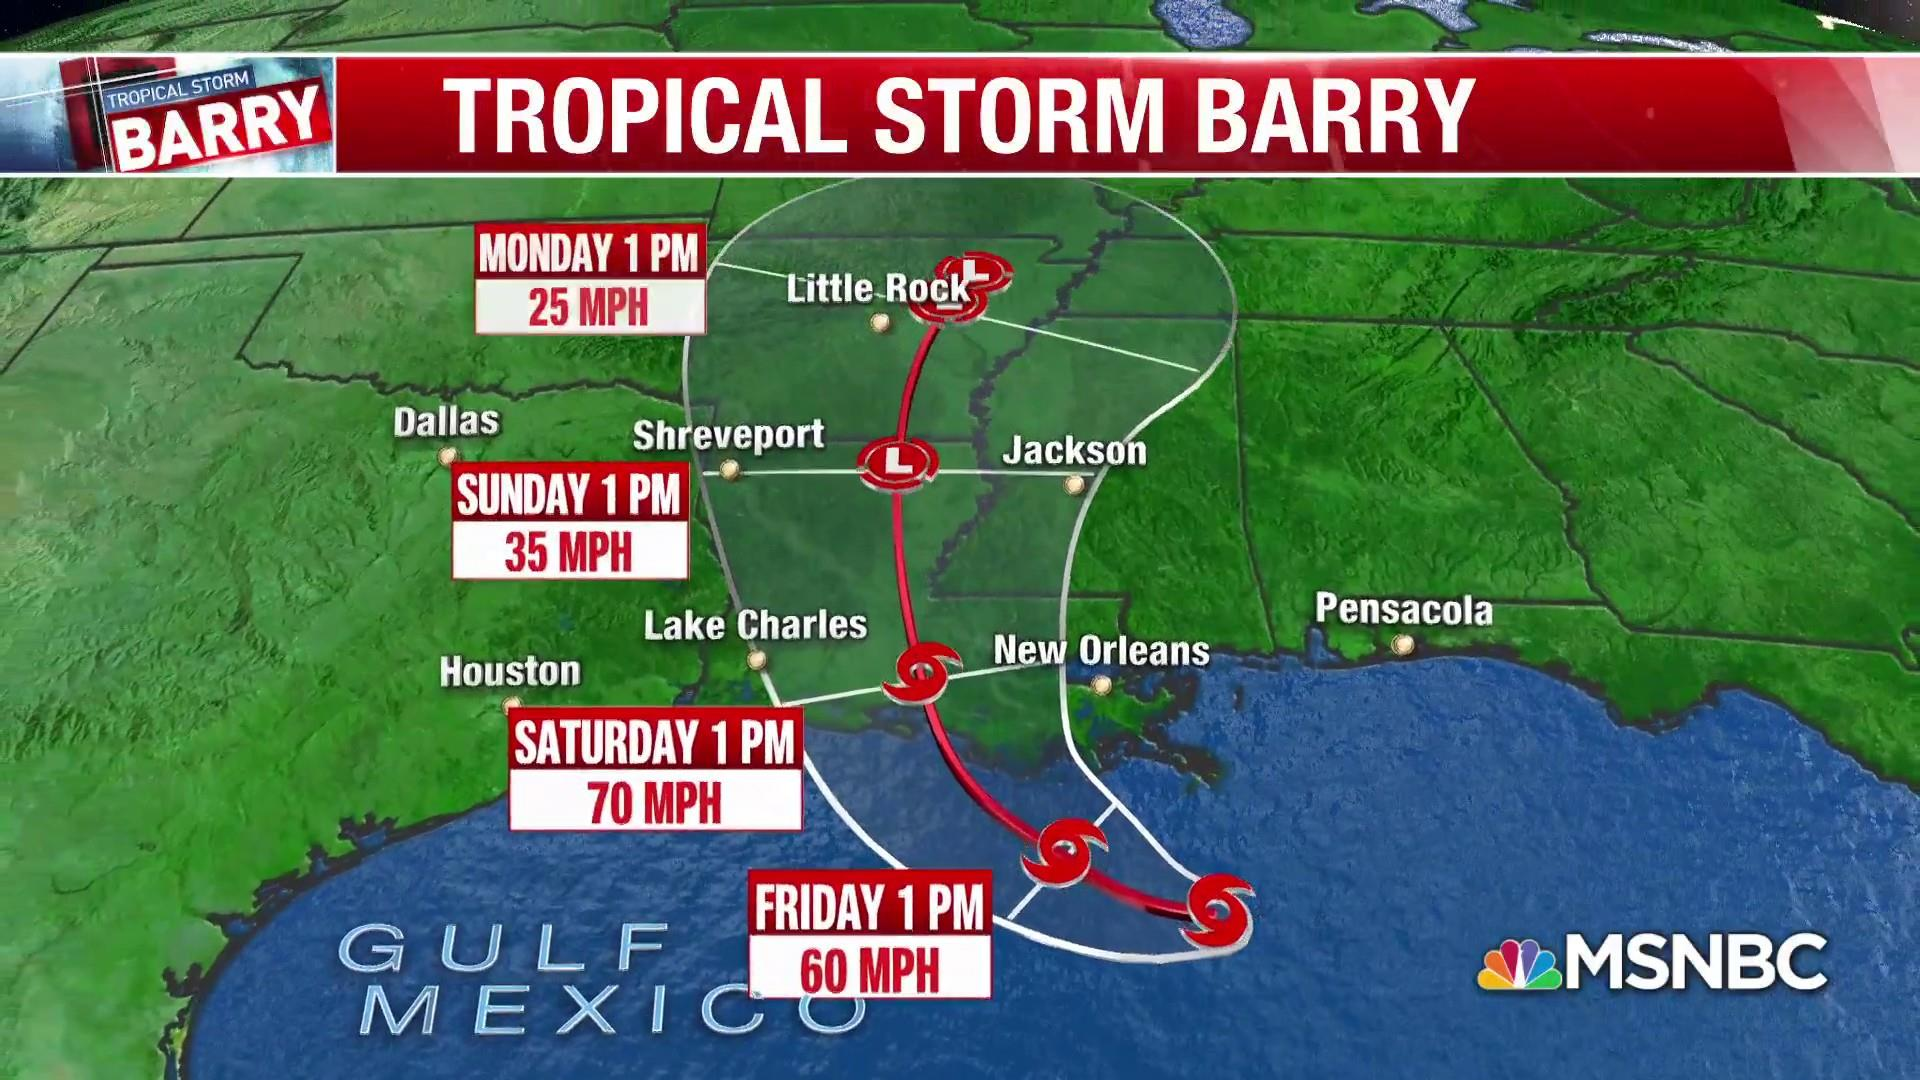 New Orleans faces massive flooding as Tropical Storm Barry bares down